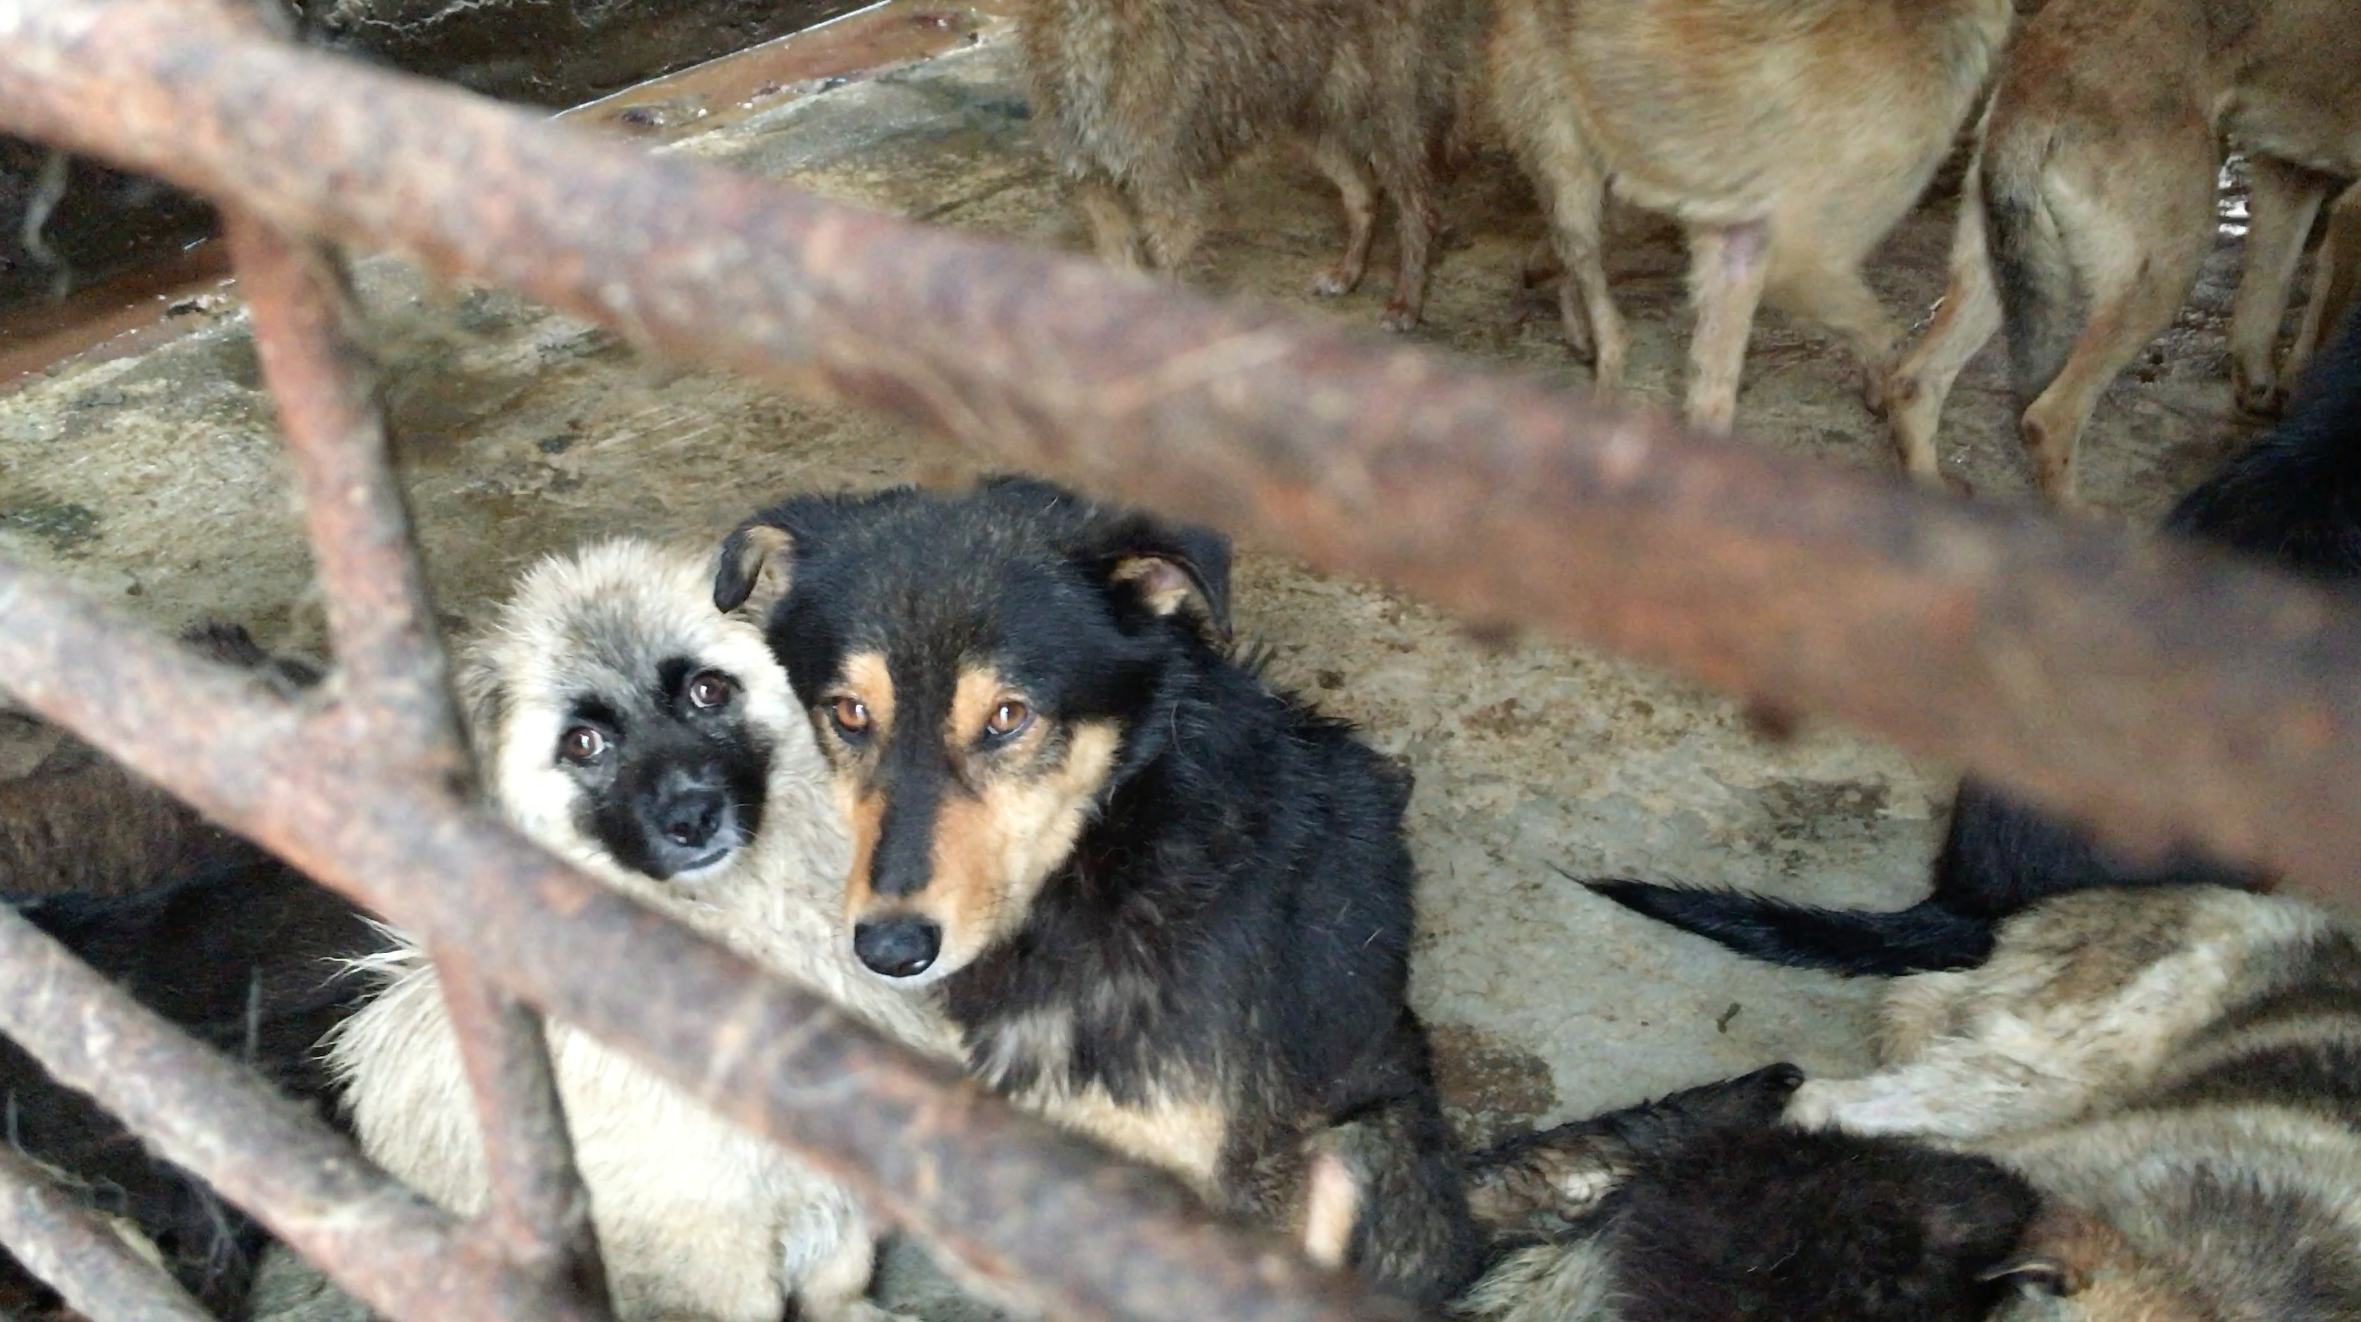 From behind the bars of their crates, two scared dogs await their slaughter.